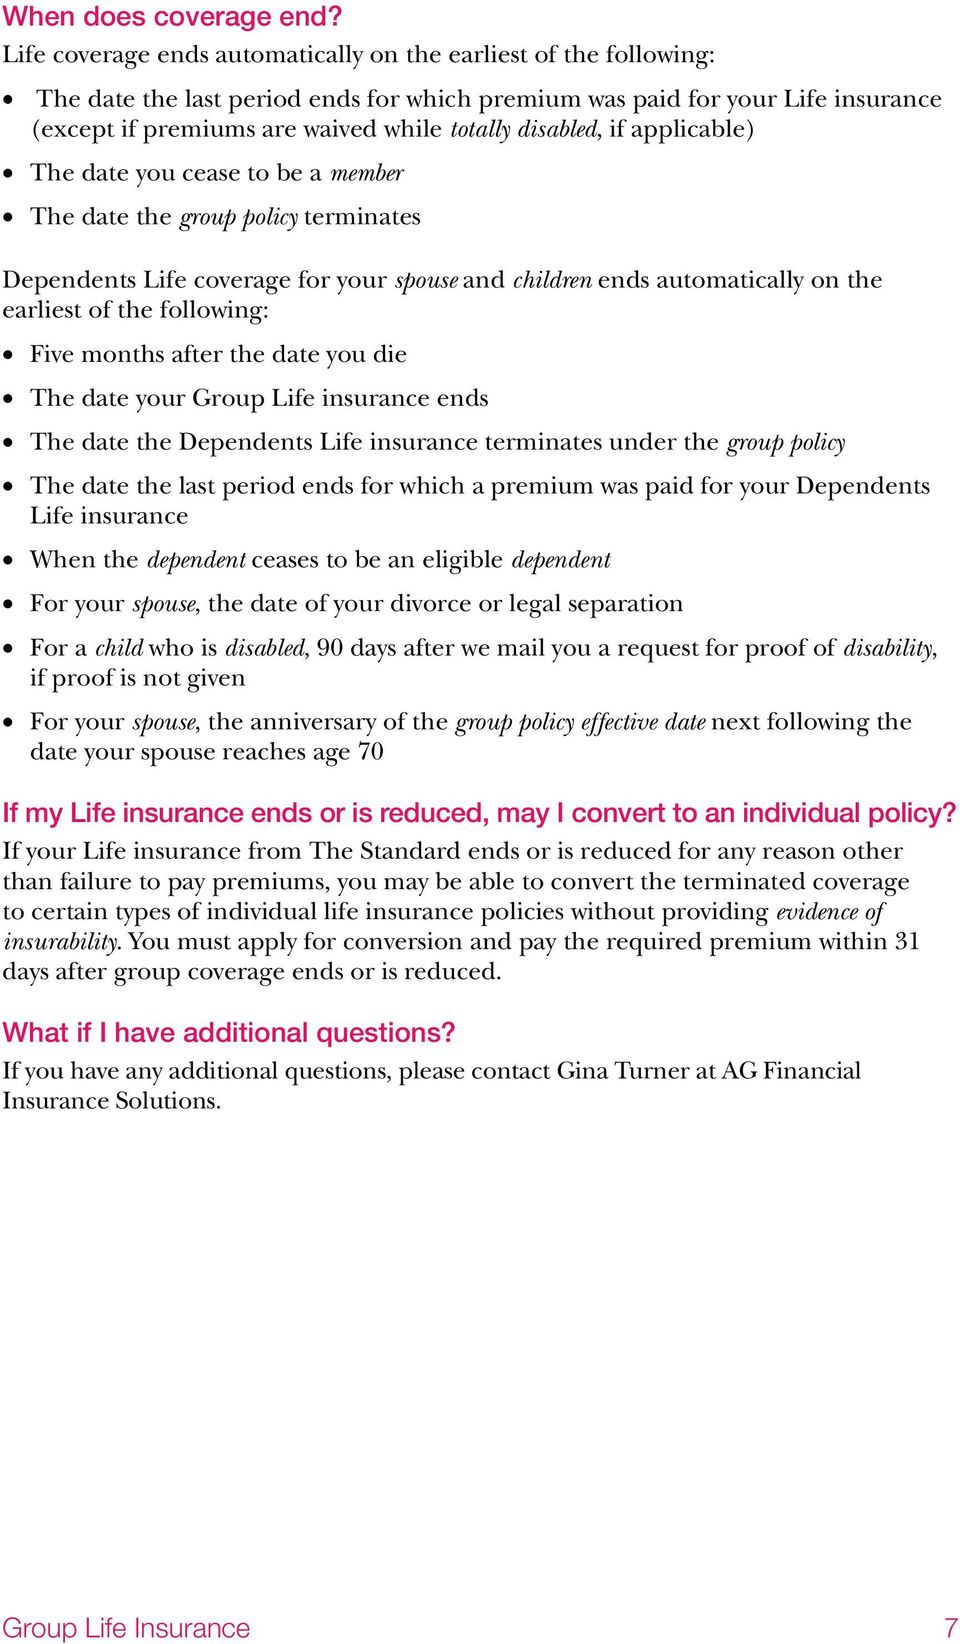 disabled, if applicable) The date you cease to be a member The date the group policy terminates Dependents Life coverage for your spouse and children ends automatically on the earliest of the